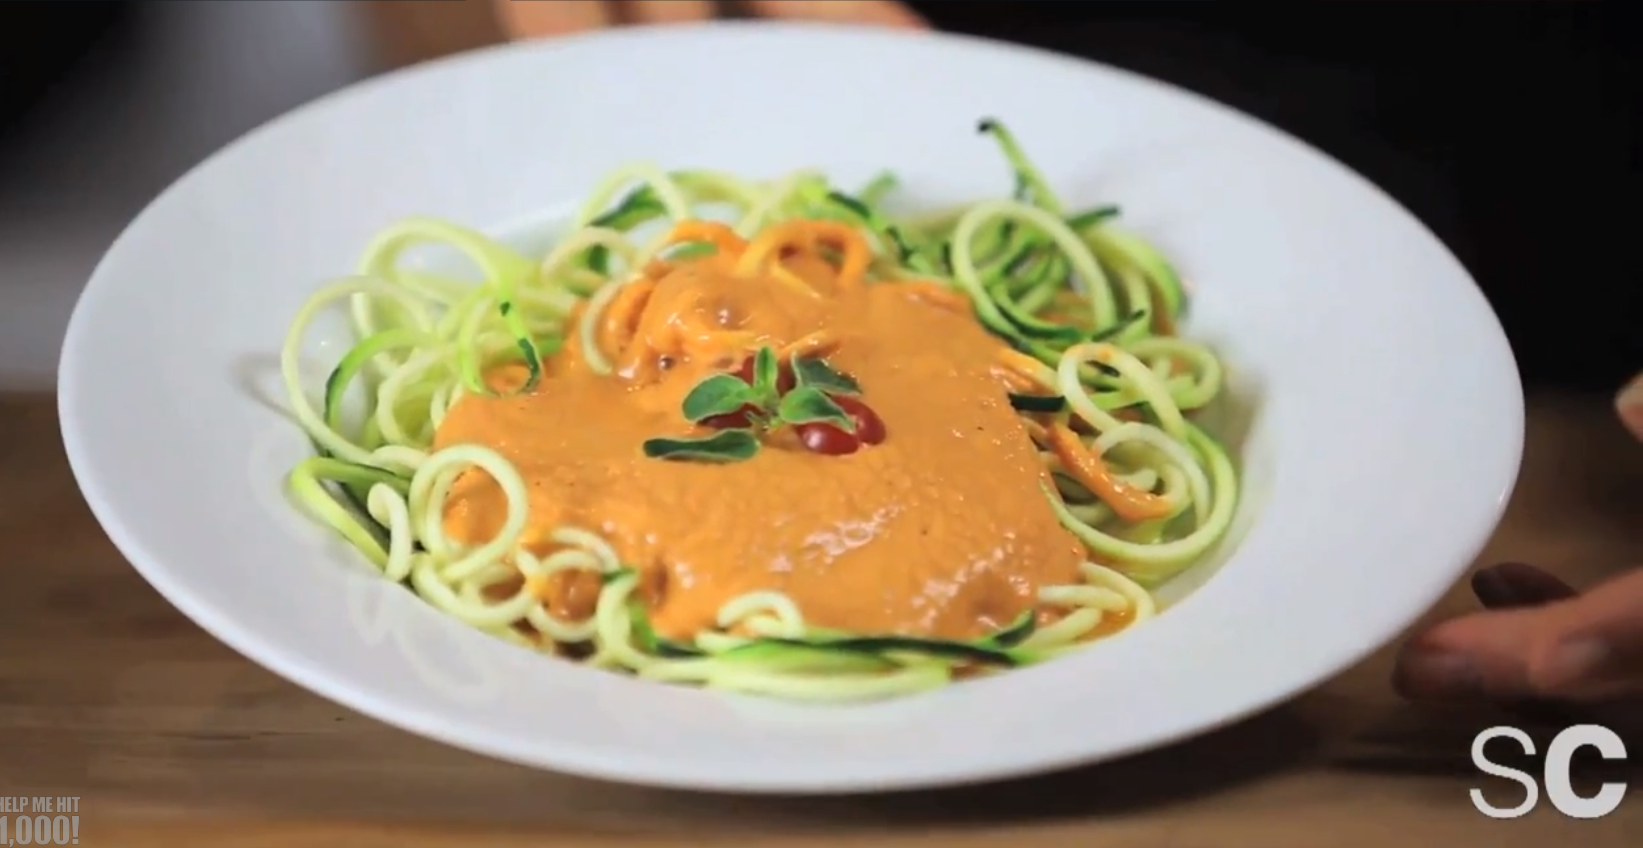 Raw zucchini pasta with spaghetti sauce the edgy veg raw pasta recipes forumfinder Image collections